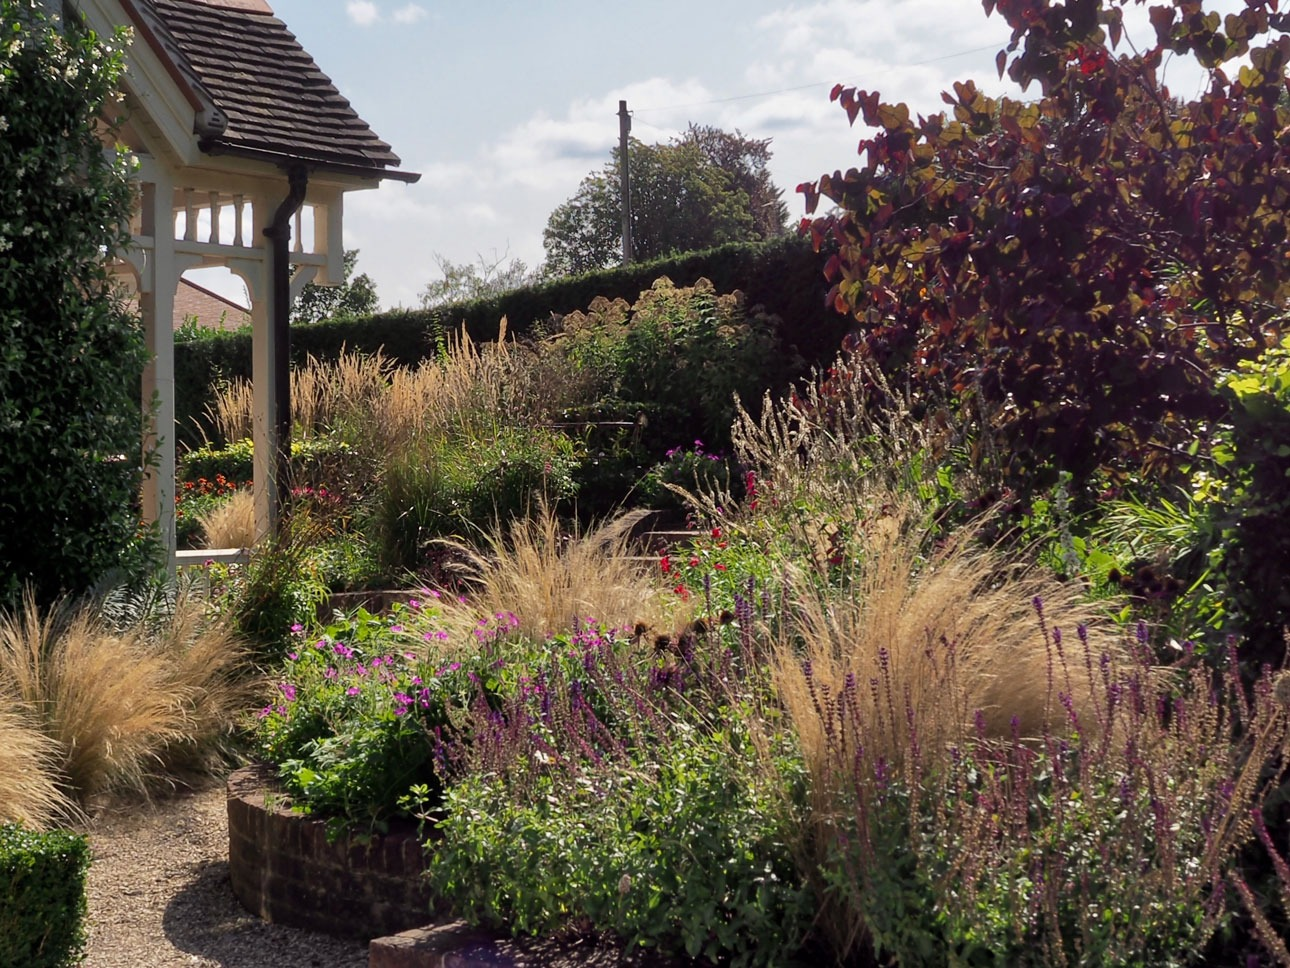 Energetic planting design for steeply sloping front garden in Berkshire designed by landscape designer Ann-Marie Powell